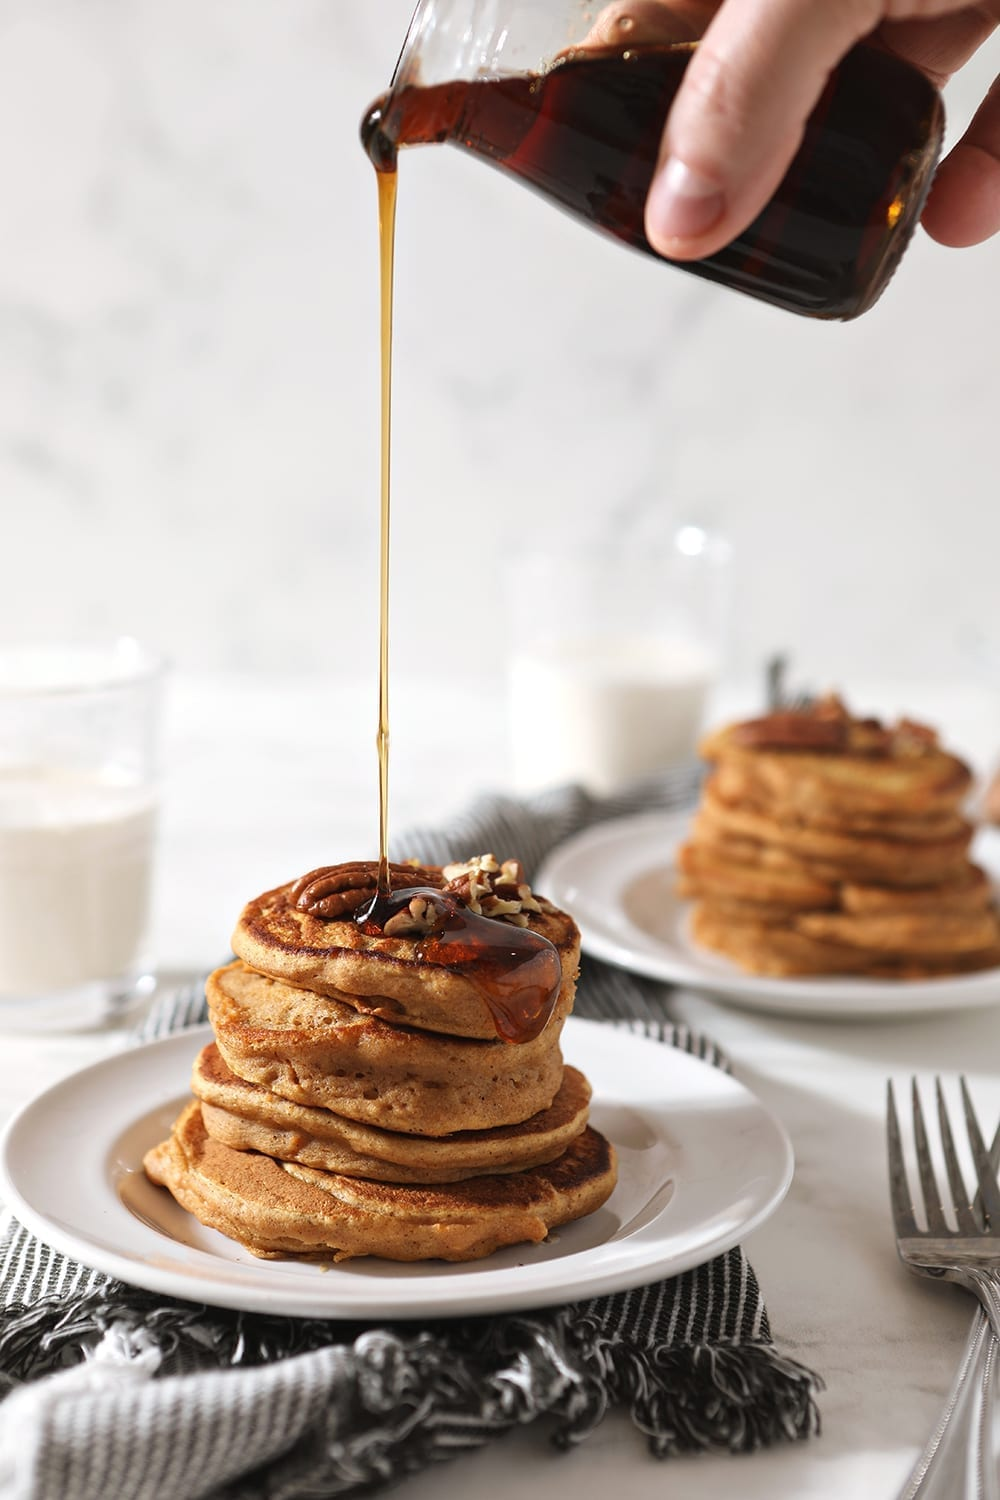 Maple syrup is drizzled onto a stack of Sweet Potato Pancakes